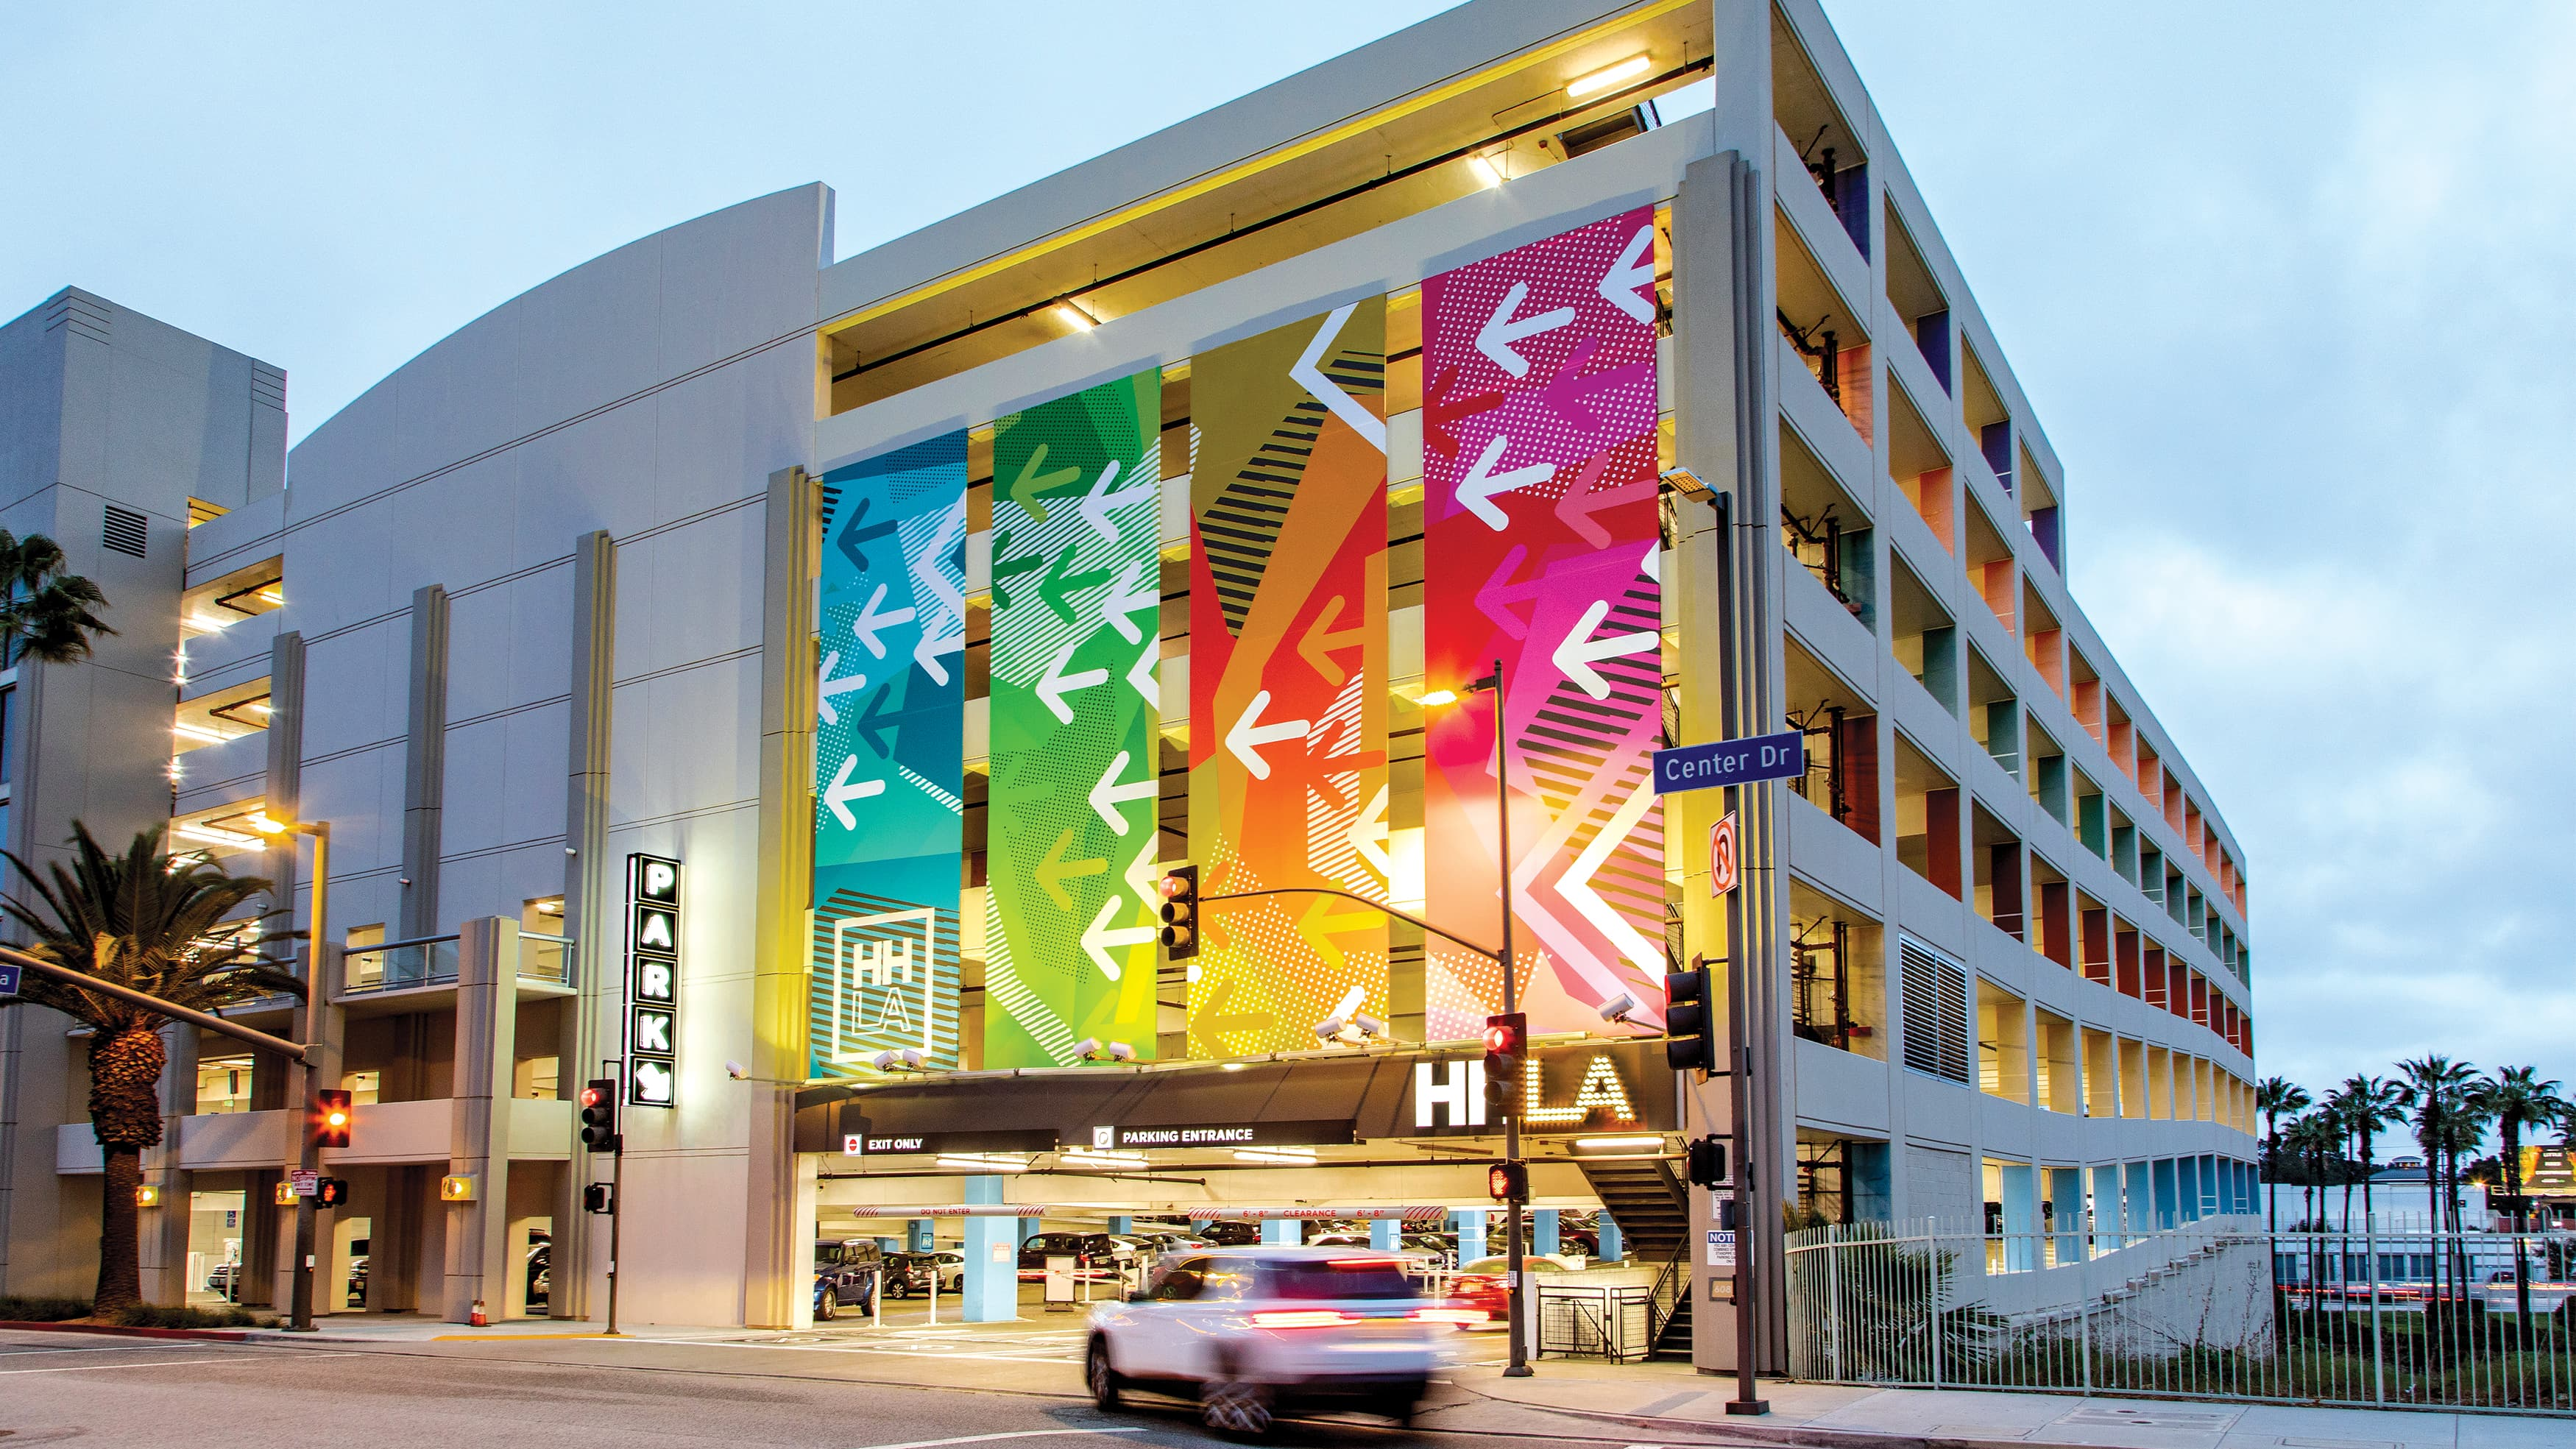 Environmental graphic design by RSM Design for HHLA's parking garages.